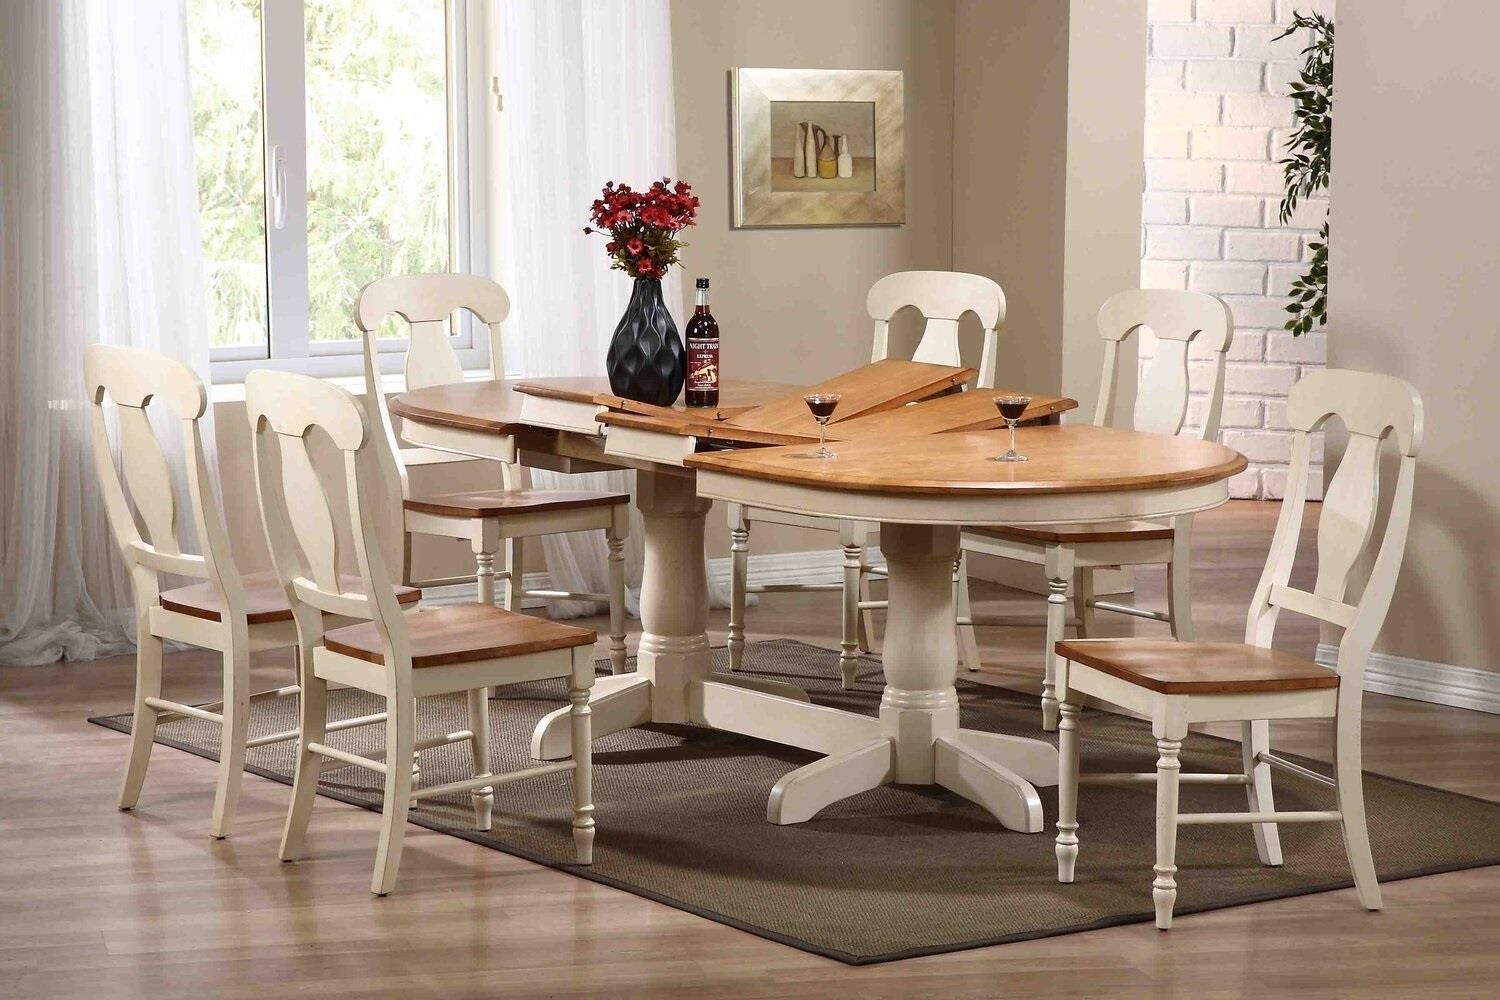 Caramel Biscotti 7 piece dining set by Iconic Furniture Co. at Dinette Depot